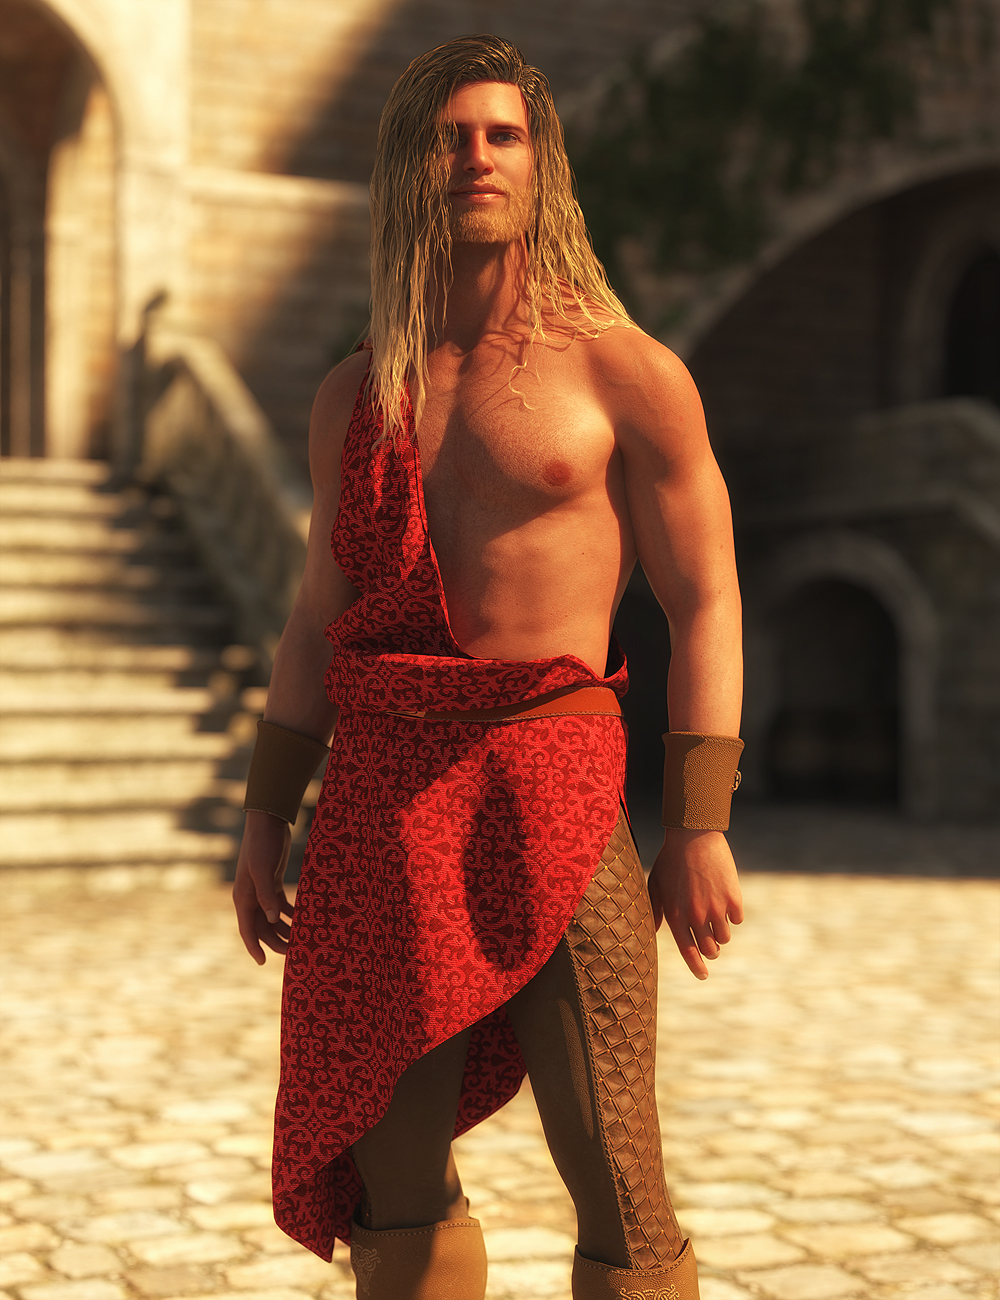 dForce Faënor Outfit for Genesis 8 Males by: AmaranthPixelTizzyFit, 3D Models by Daz 3D